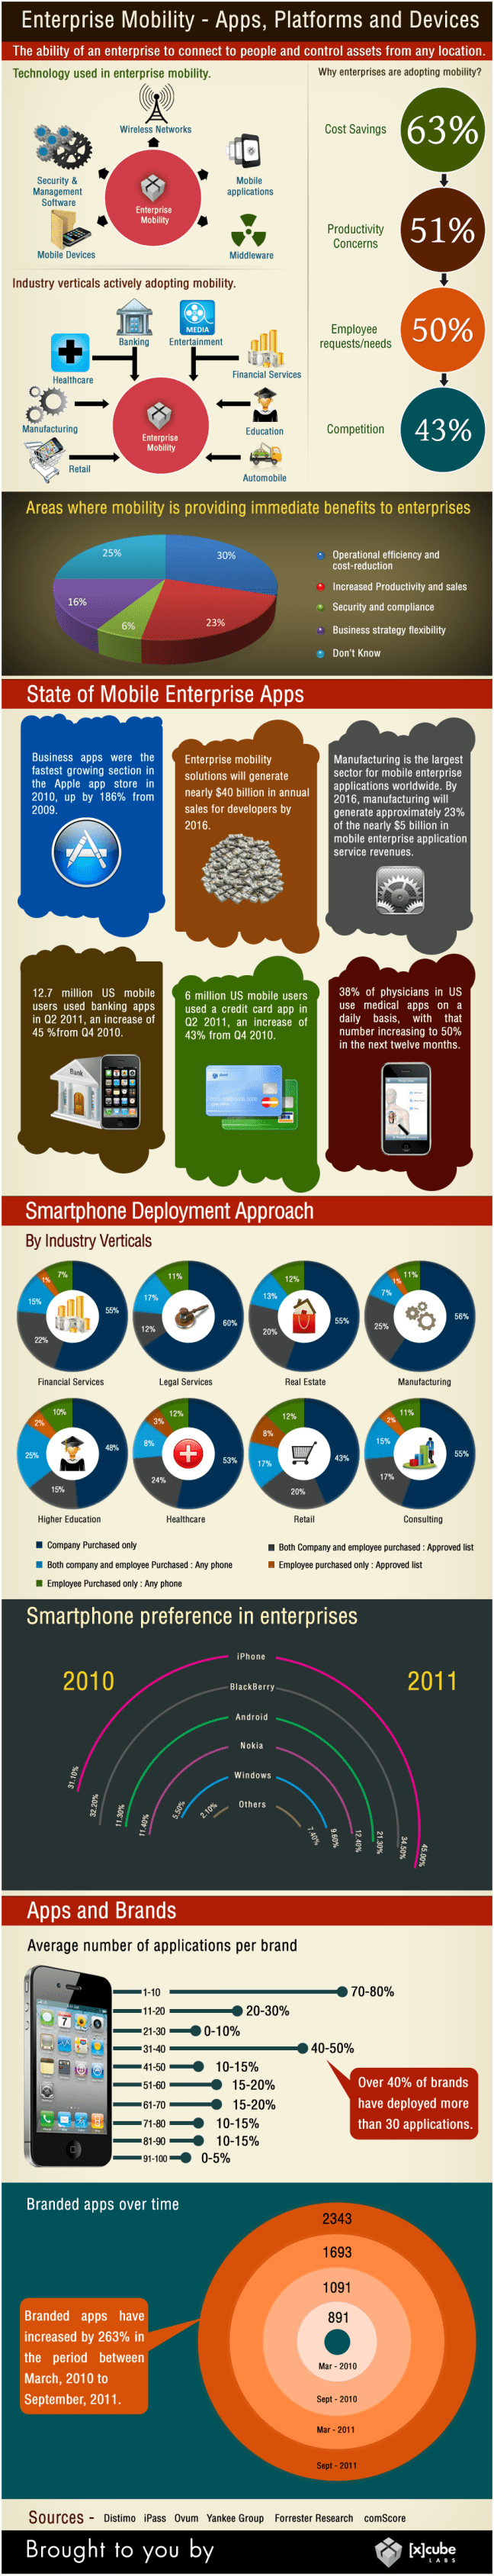 An Infographic on Enterprise Mobile Apps Usage